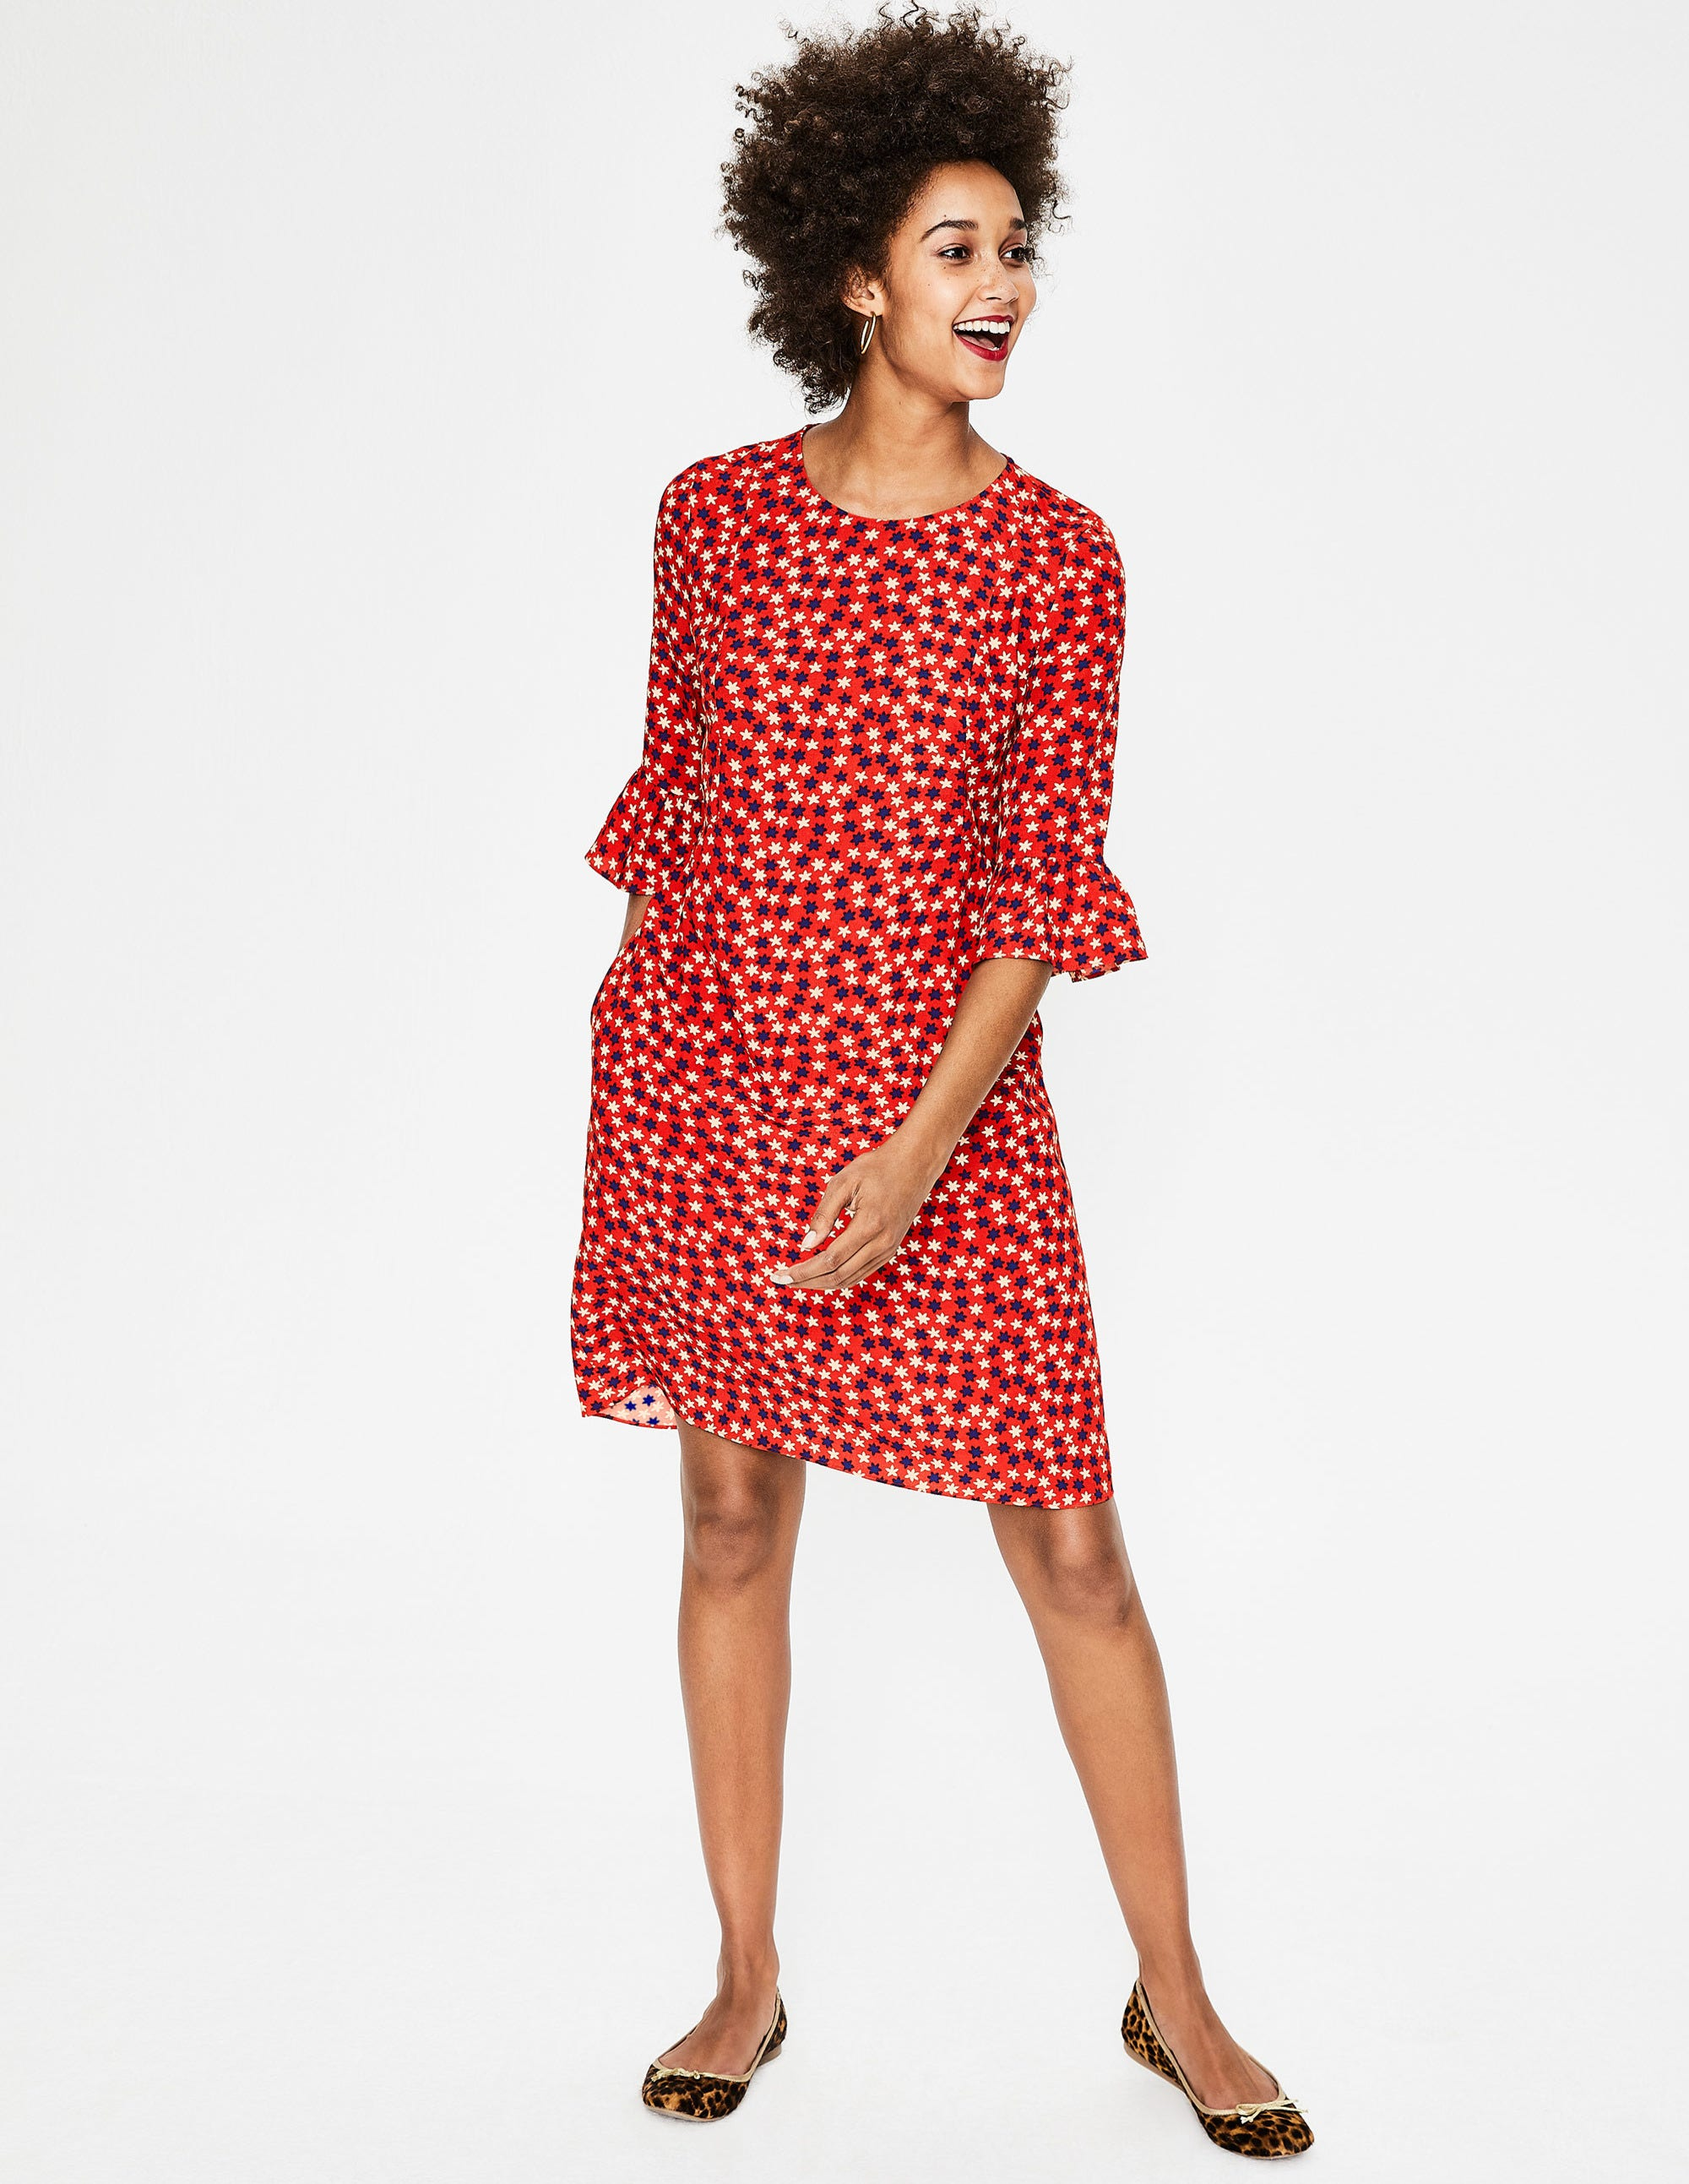 19130f23eee Hyacinth Dress - Post Box Red Scattered Stars | Boden US